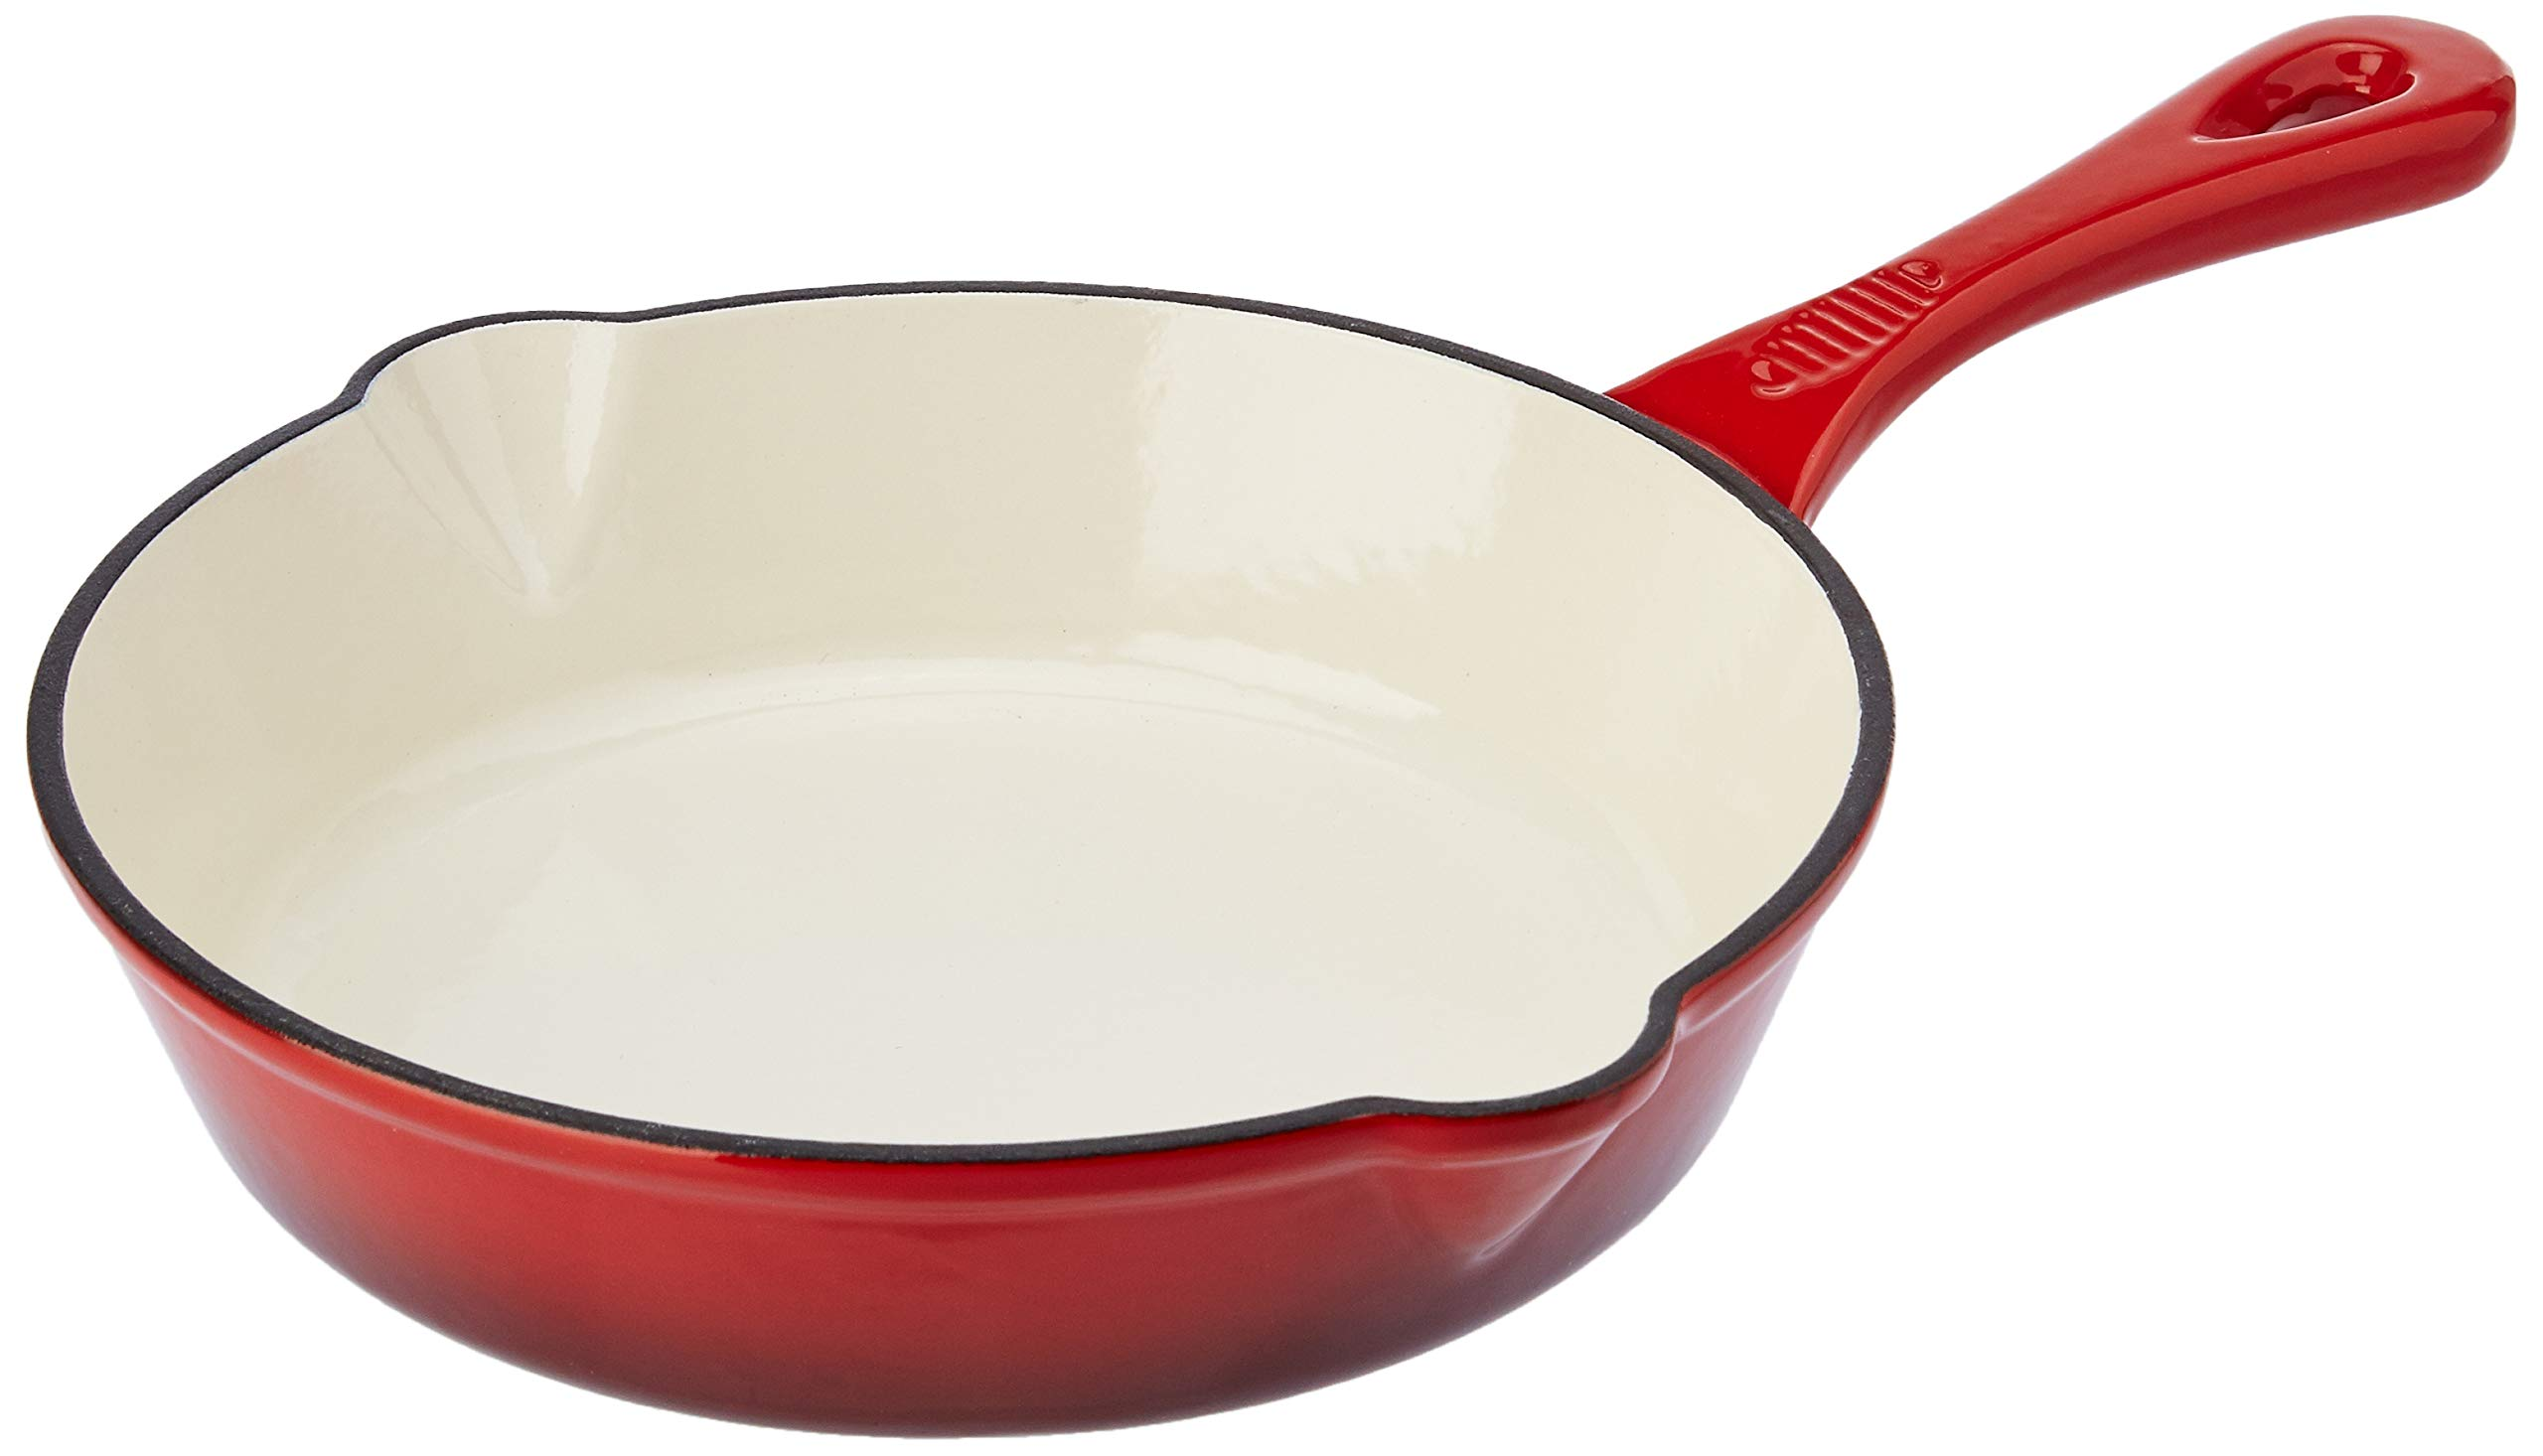 Amazon Brand - Solimo Cast Iron Fry Pan, 21cm, Red